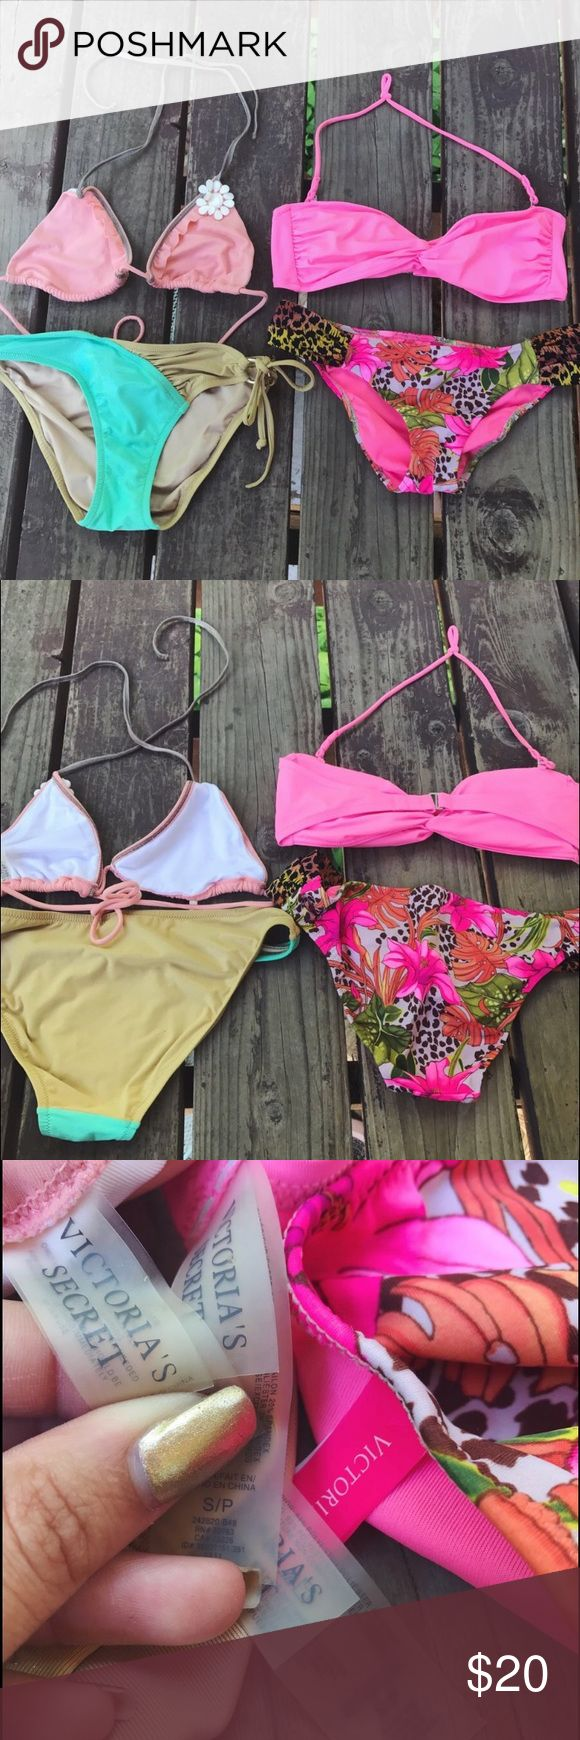 🌿 VS Bikini Set 🌿🍒 VS BIKINI SET 🌿🍒  ••• adorbs VS bikinis. string tops. both size small. no flaws or stains. pre loved and washed. victoria's secret brand. •••  #victoriassecret #swimwear #swimsuit #bikini #set #depopfamous  💓 Bundle & Save! 💓 No trades! 💓 Check out my closet for more! Victoria's Secret Swim Bikinis